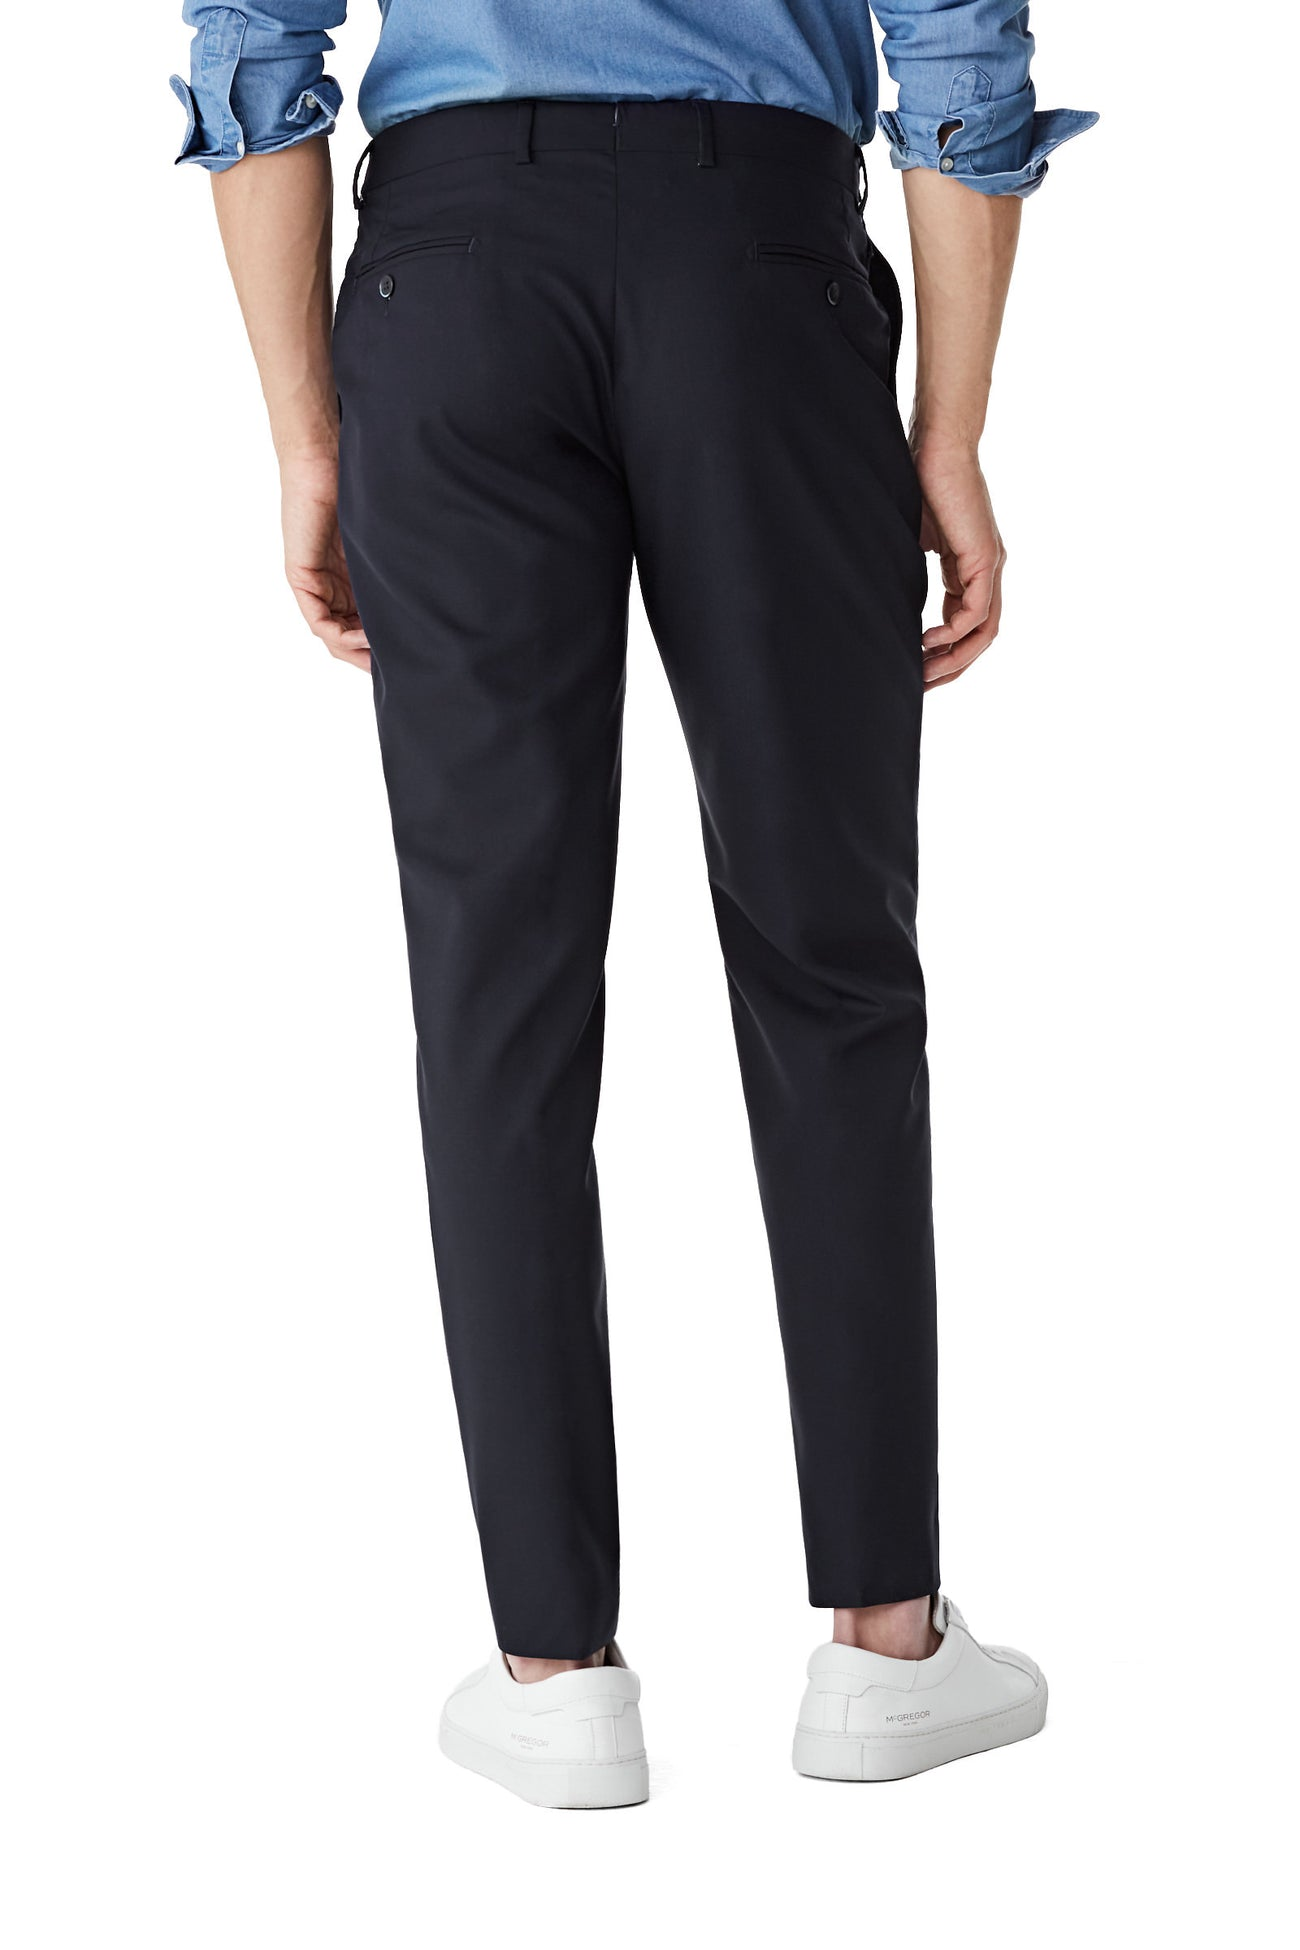 The McG Summer Wool Pant